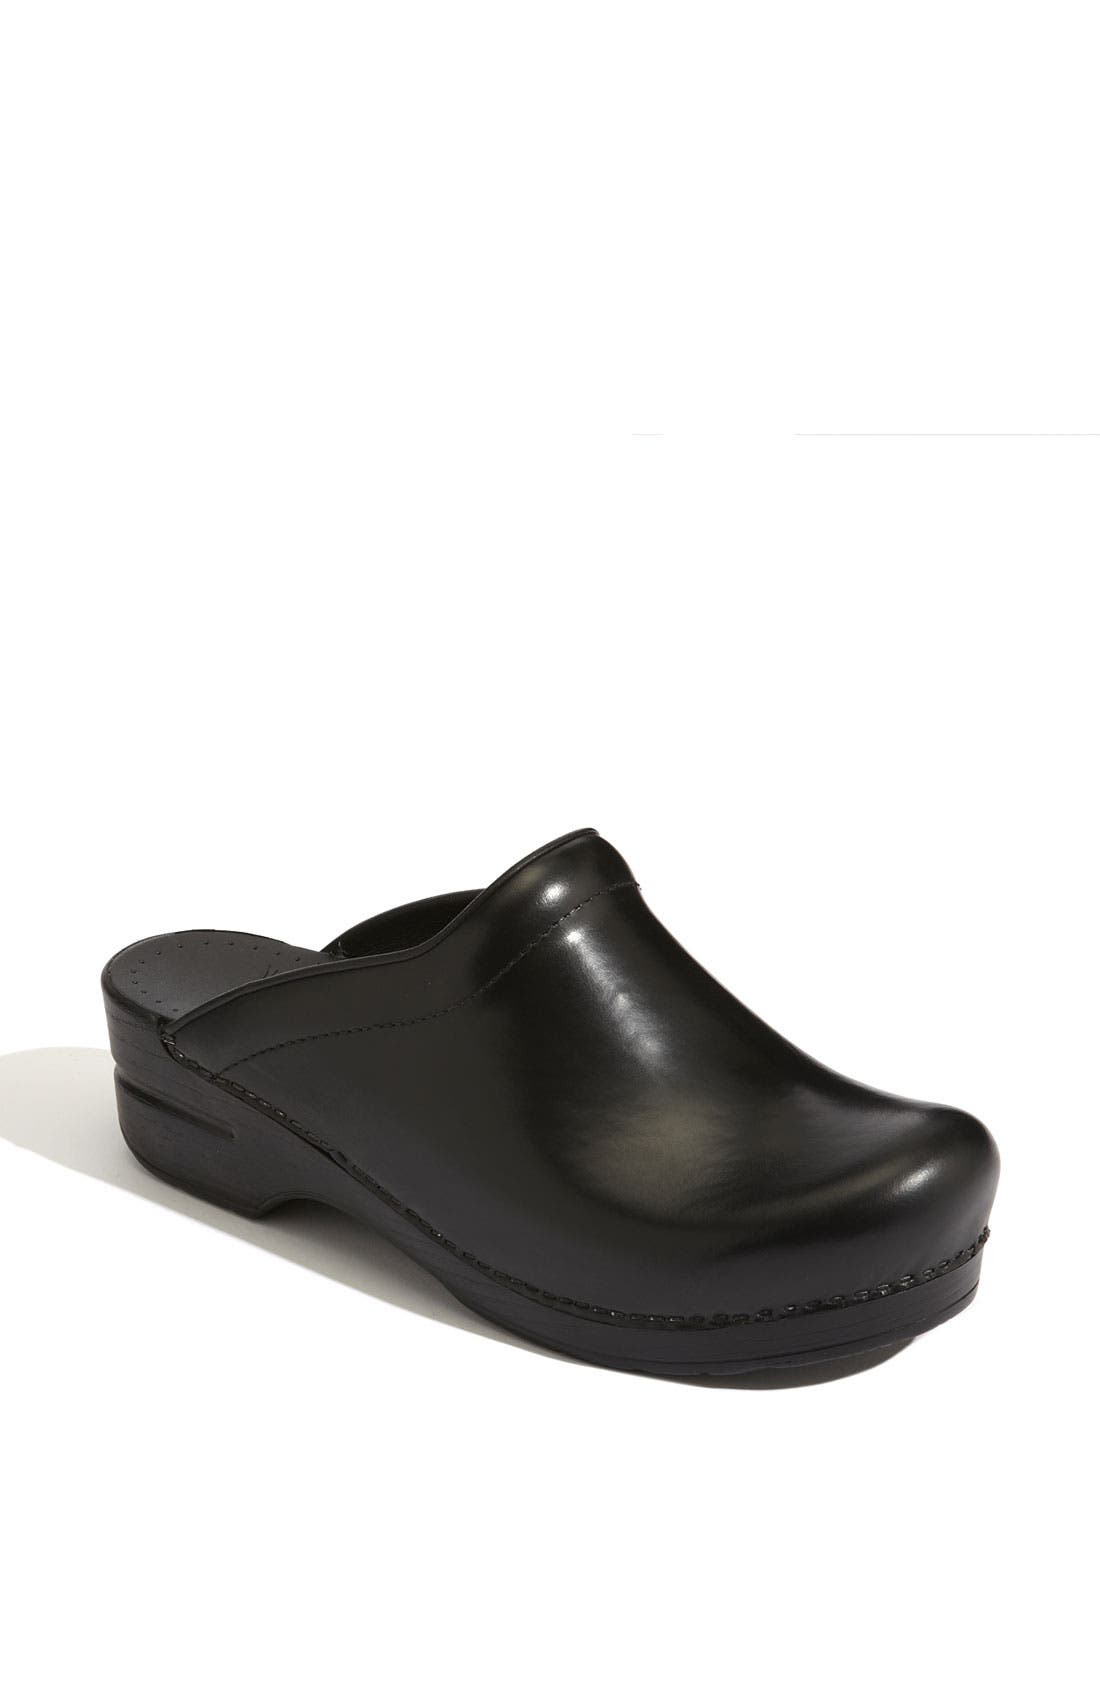 DANSKO Sonja Leather Clog